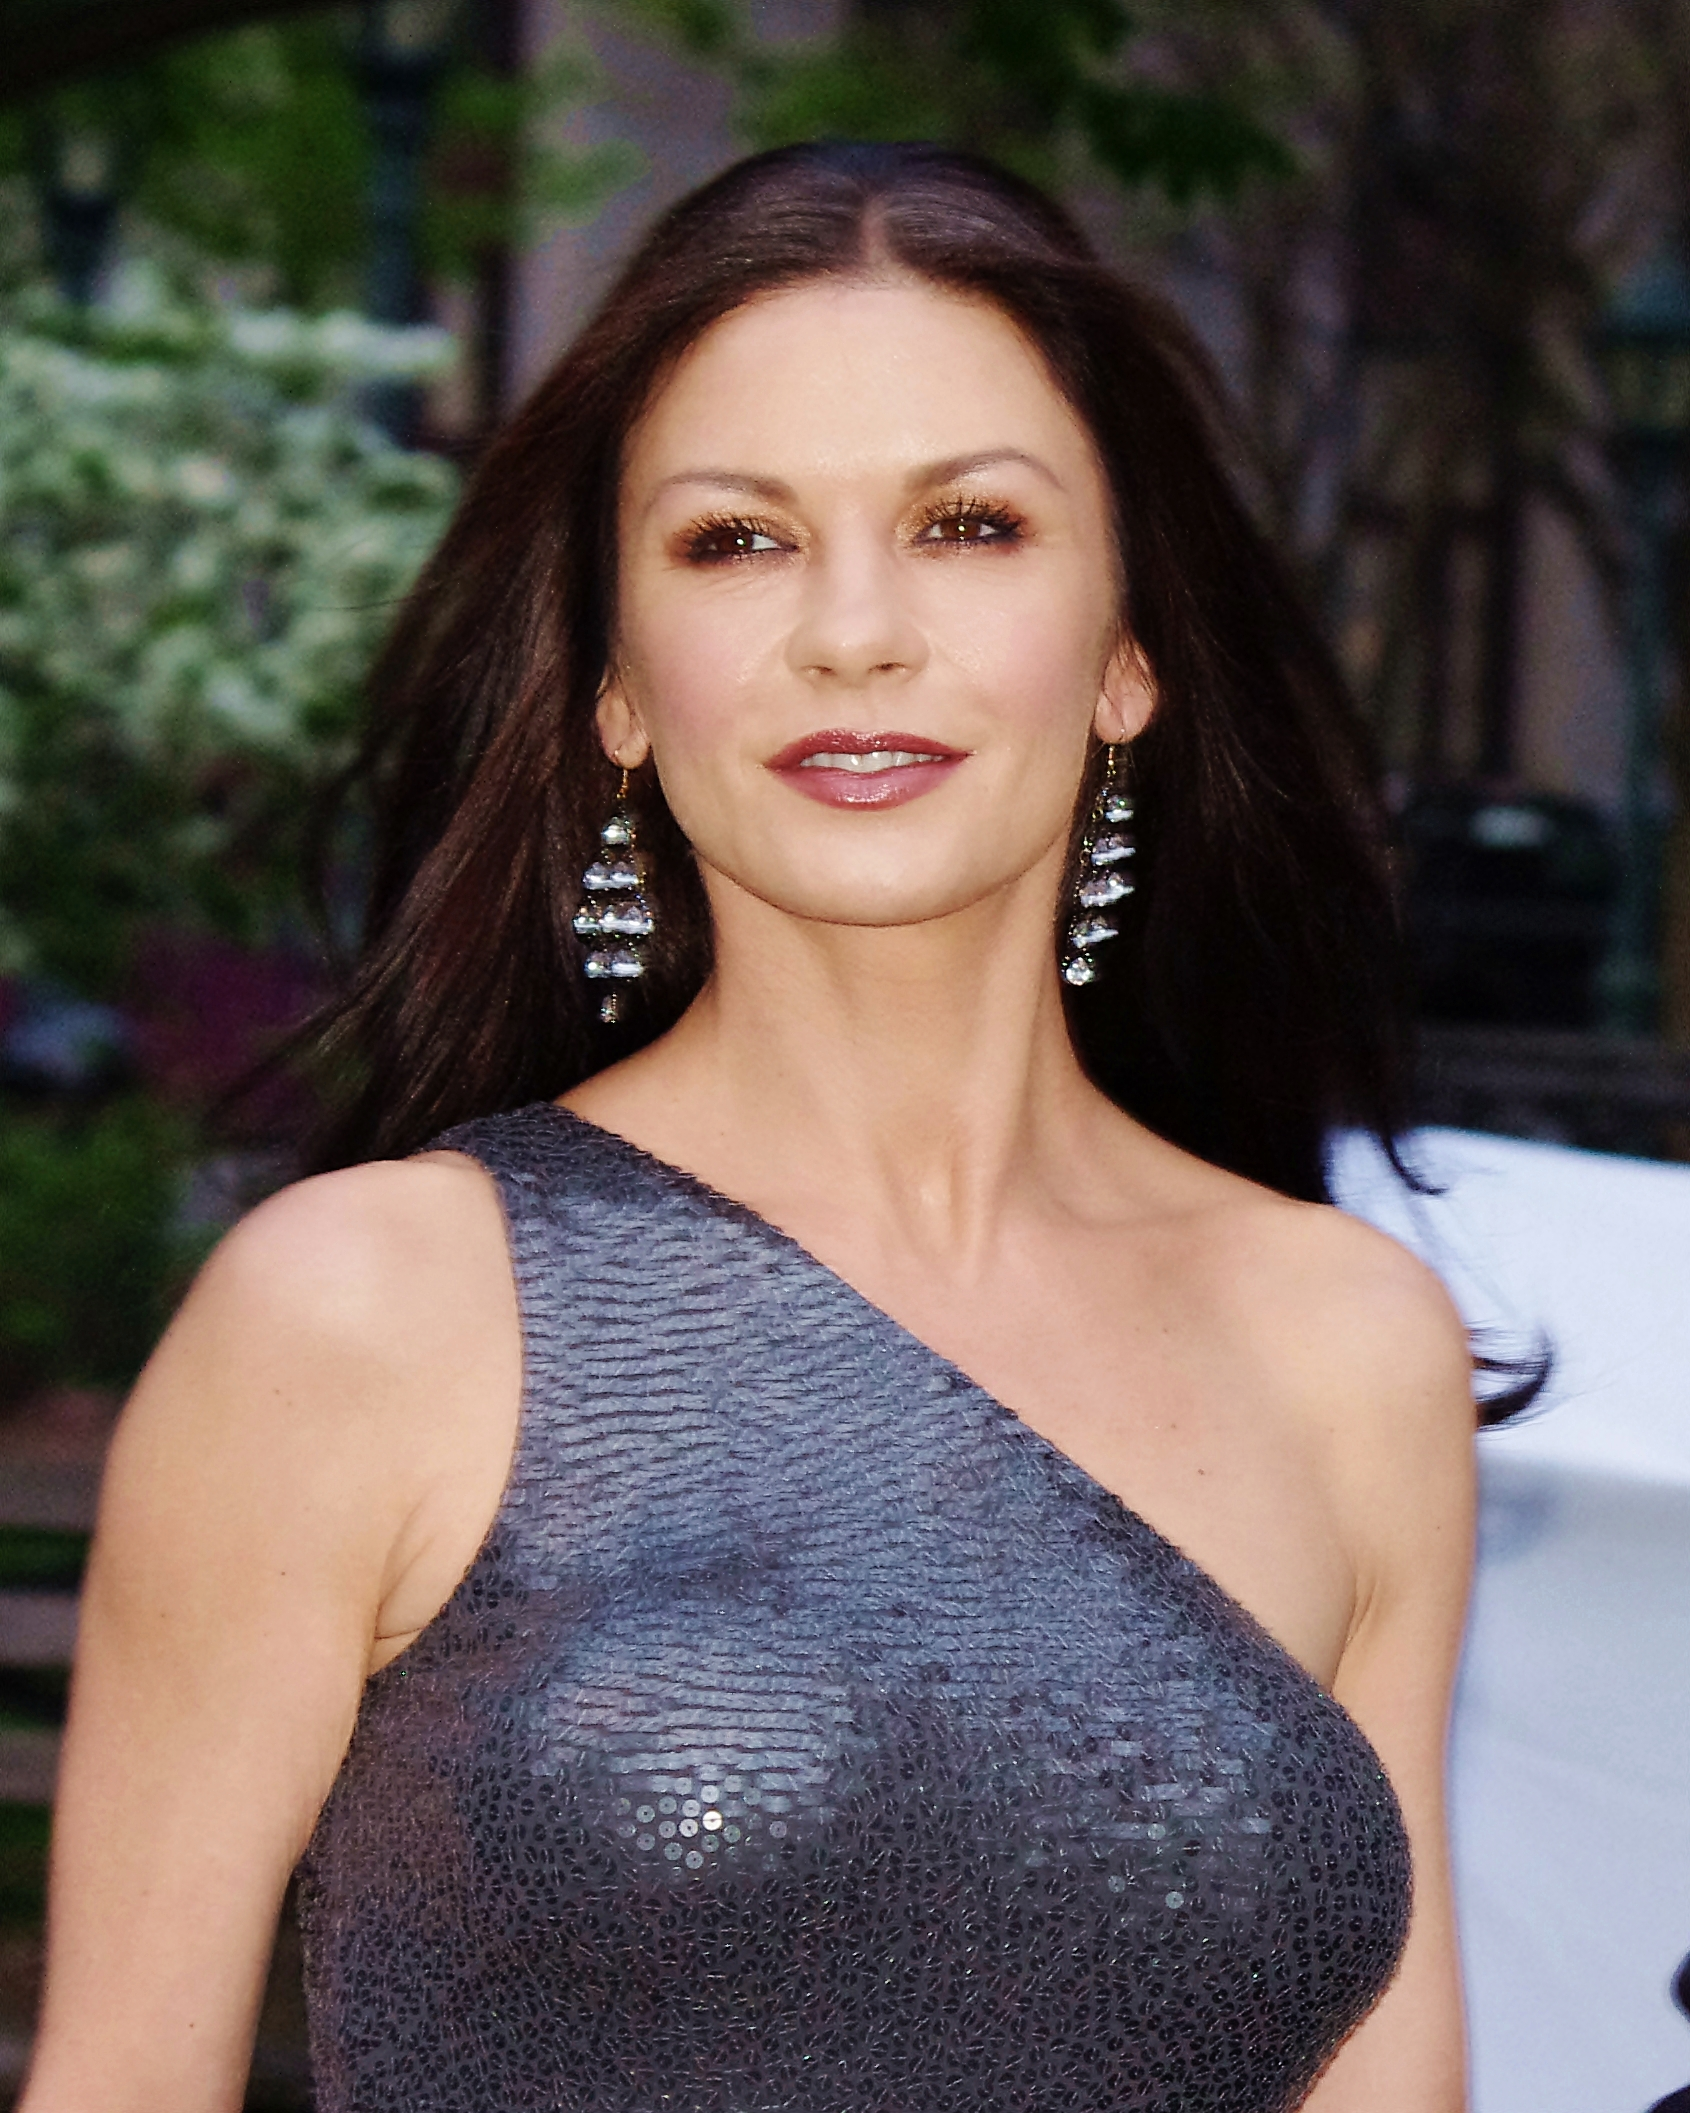 The 49-year old daughter of father David James Jones and mother Patricia Fair Catherine Zeta-Jones in 2018 photo. Catherine Zeta-Jones earned a 6.5 million dollar salary - leaving the net worth at 45 million in 2018